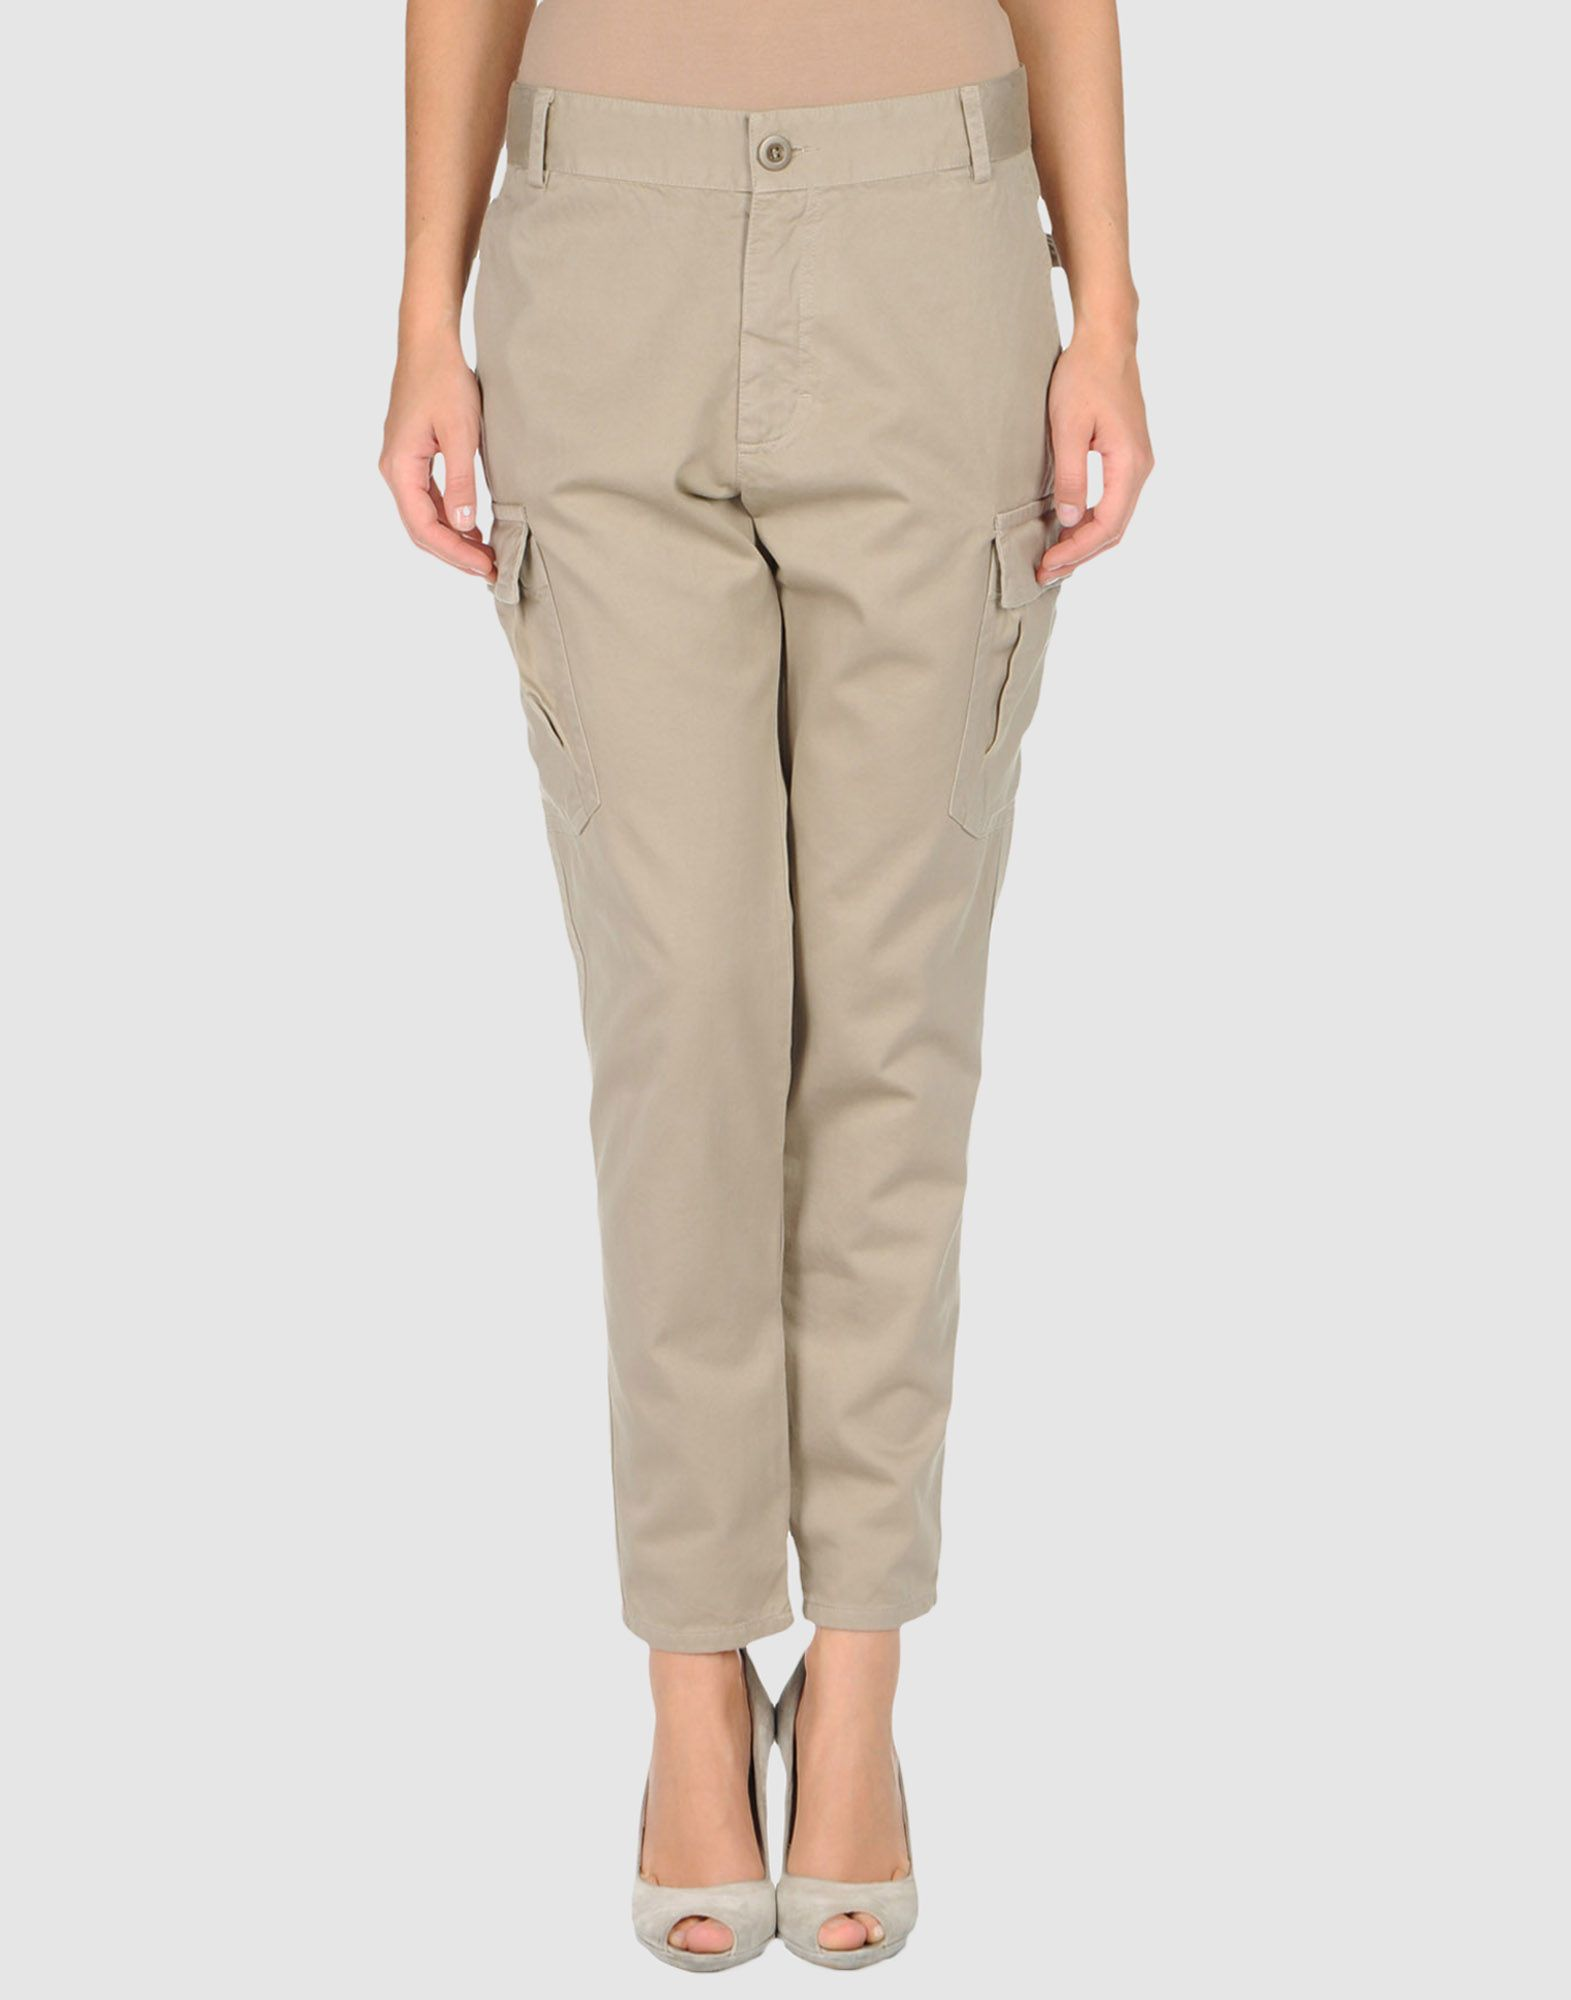 TROUSERS - Casual trousers MORE BY SISTES BV0D7ri5